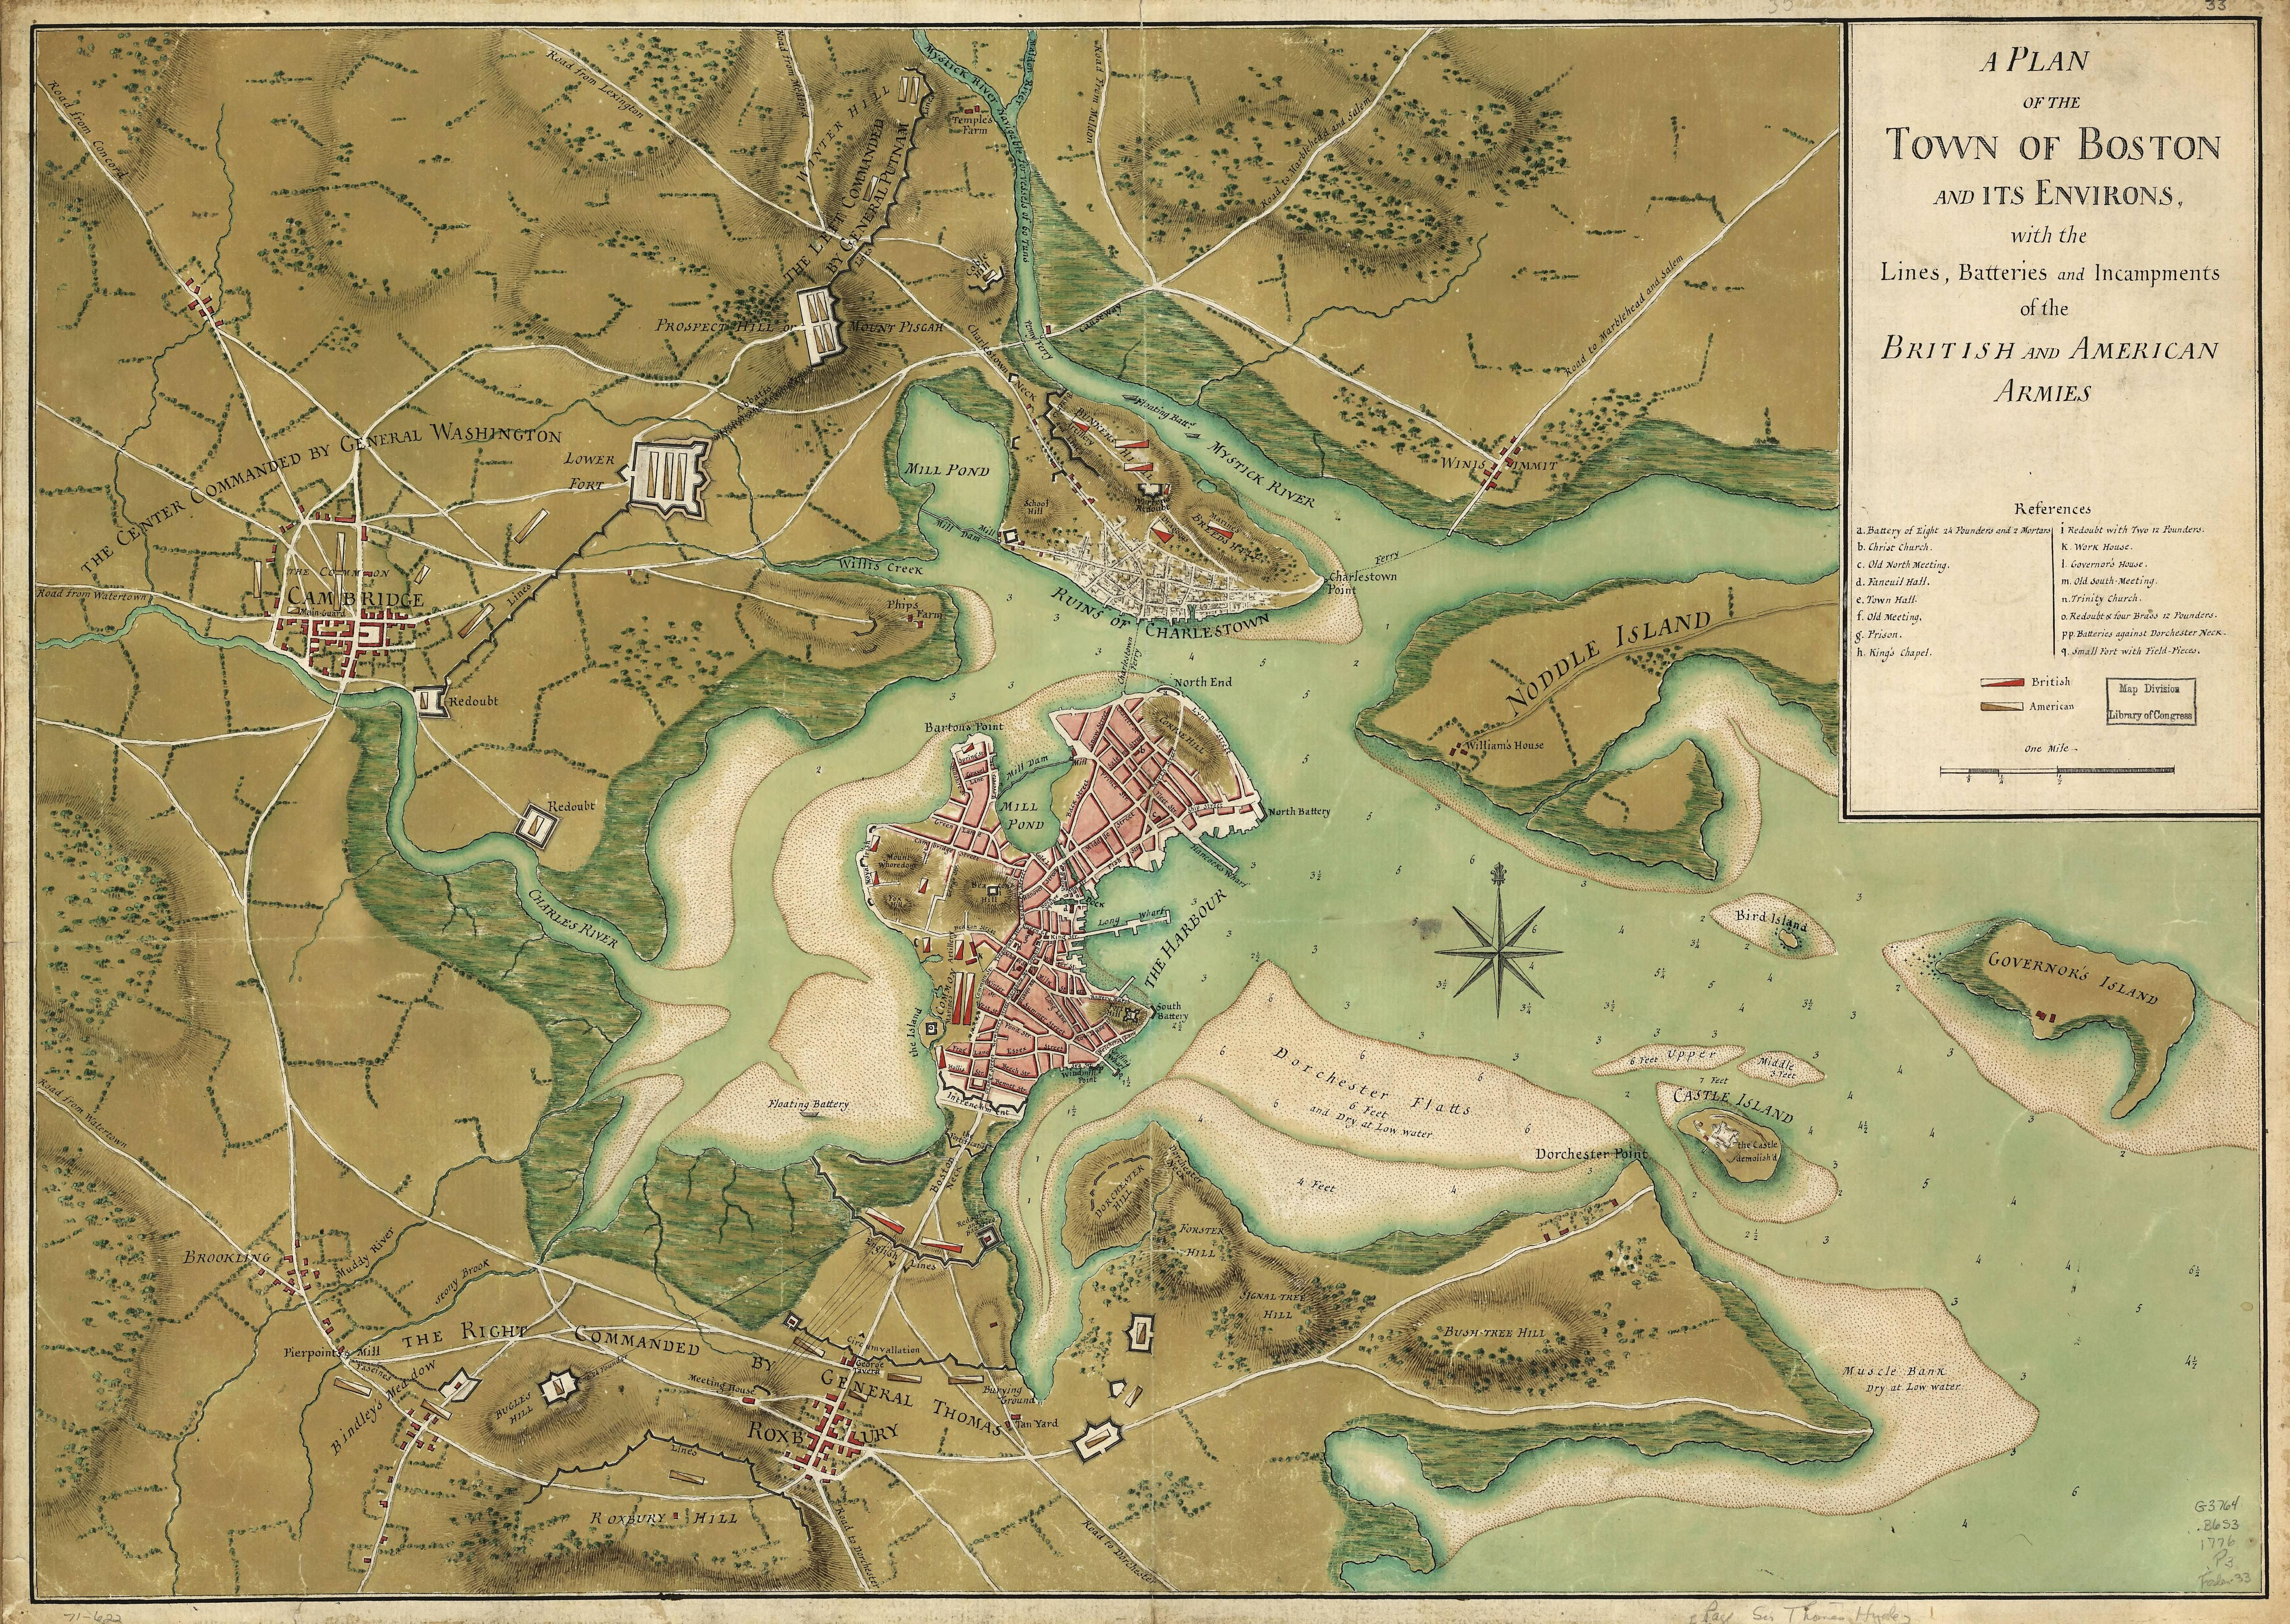 map of colonial boston area 1776 Map Of Boston And Surrounding Areas During The Siege Of map of colonial boston area